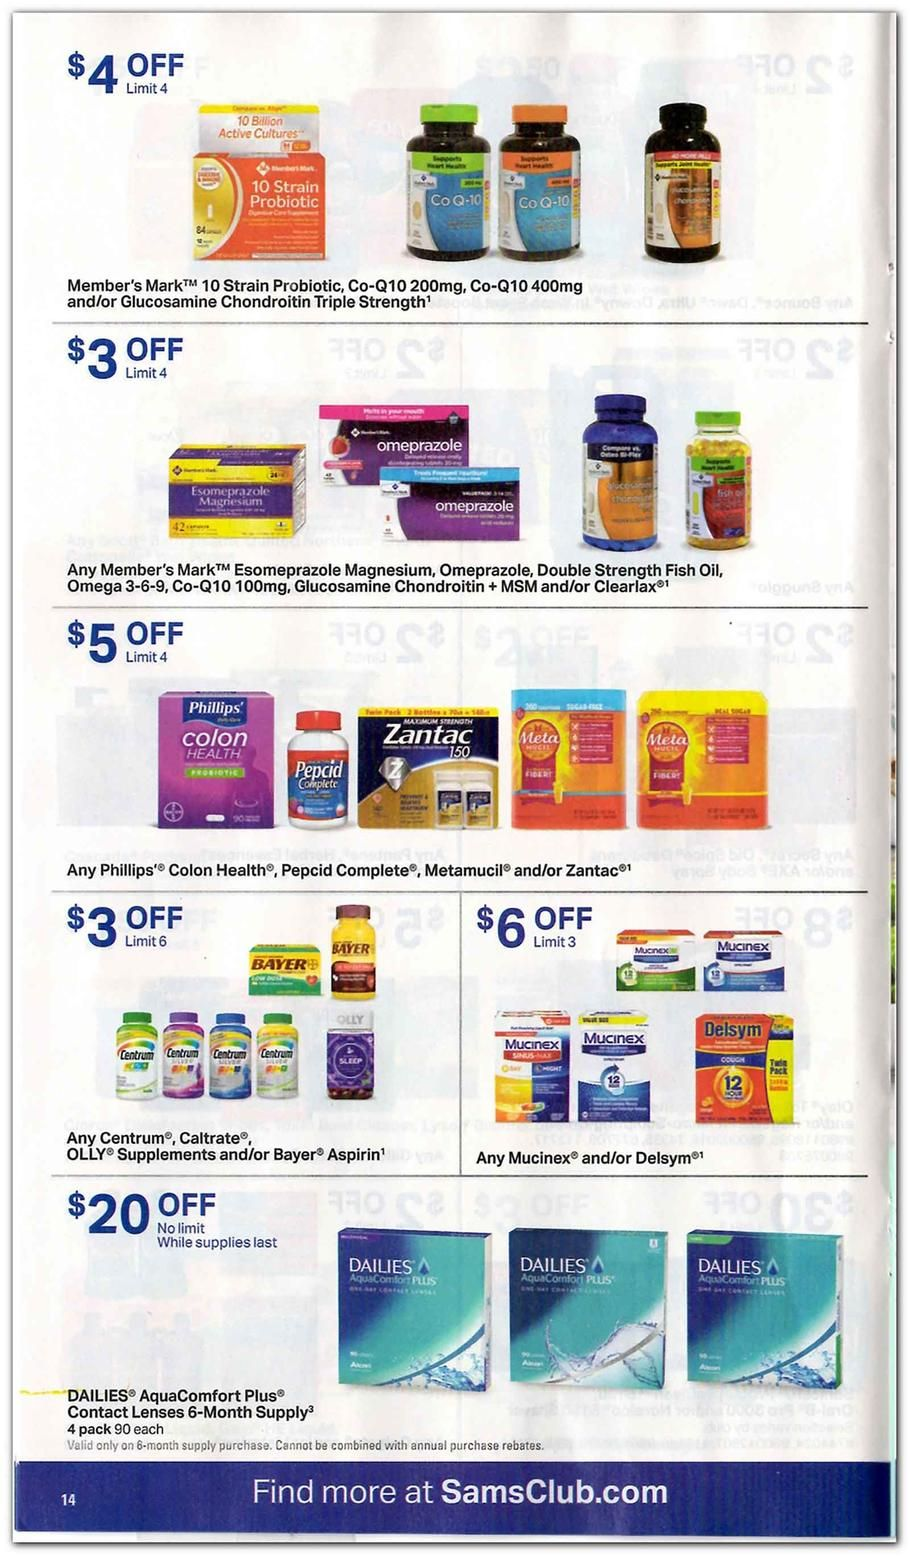 Sam S Club Featured 2018 Ads And Deals Sams Club Ads Members Mark